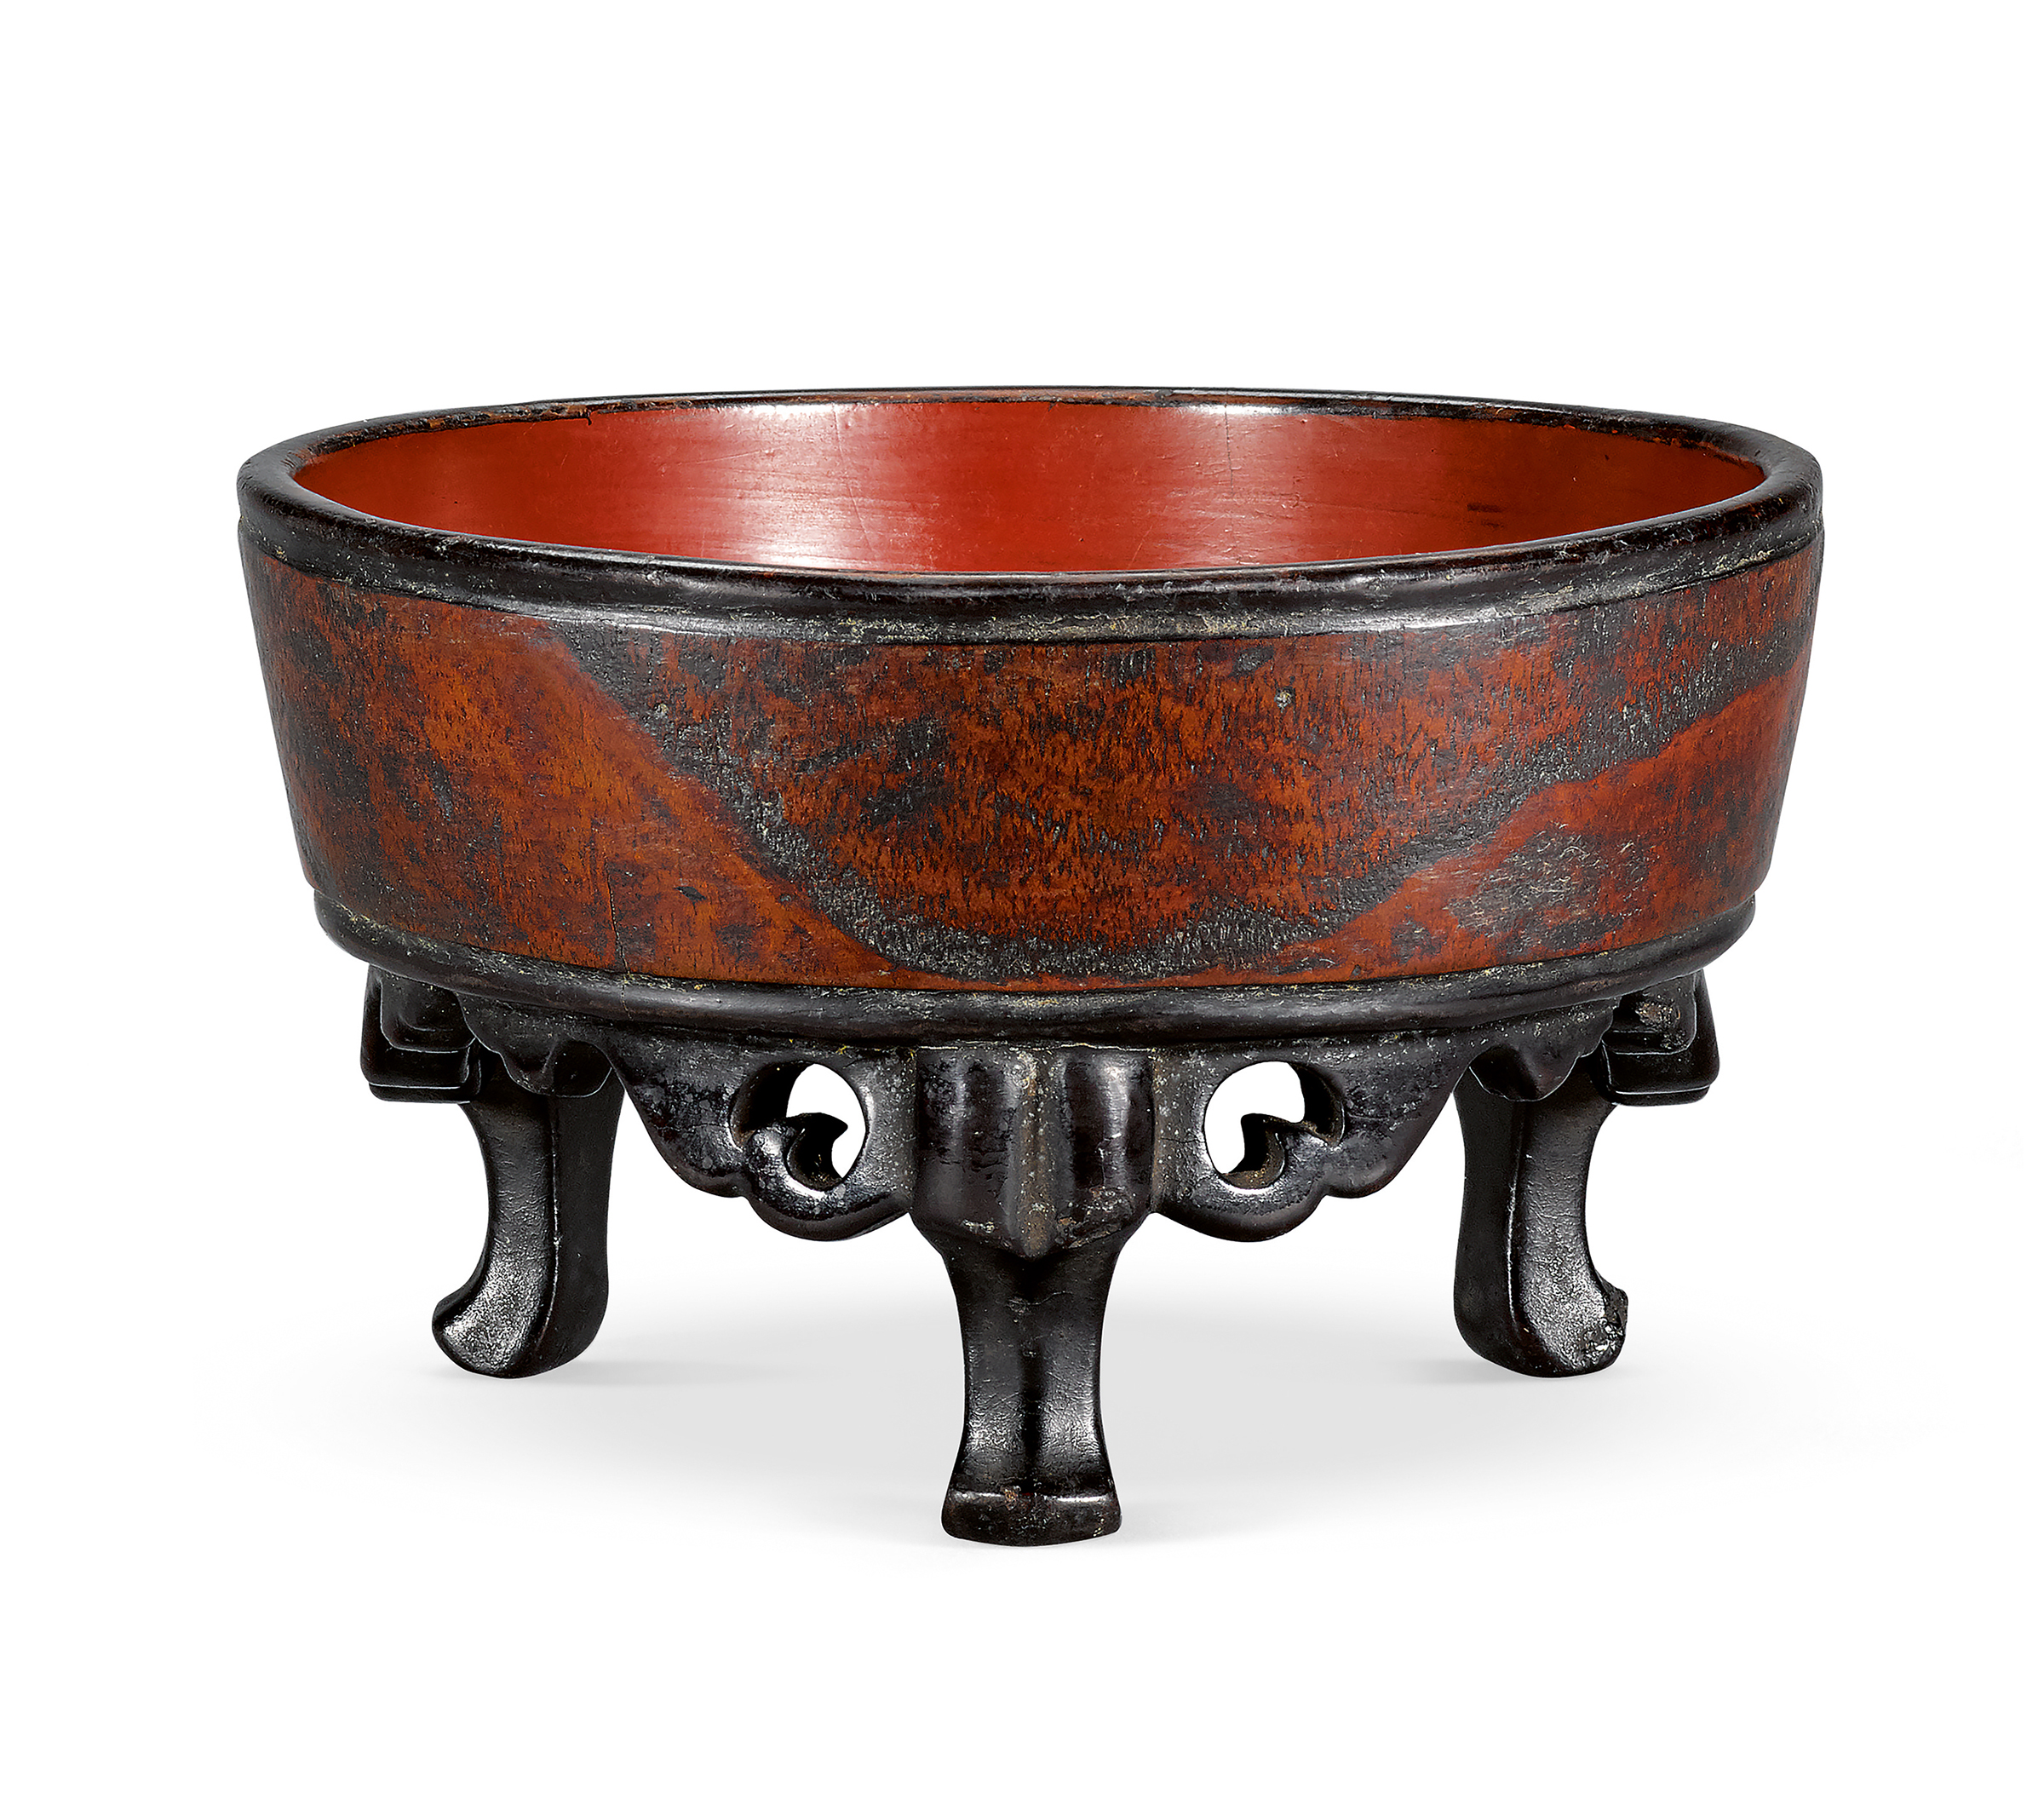 A NEGORO FOOTED BASIN MUROMACHI PERIOD, 14TH -15TH CENTURY